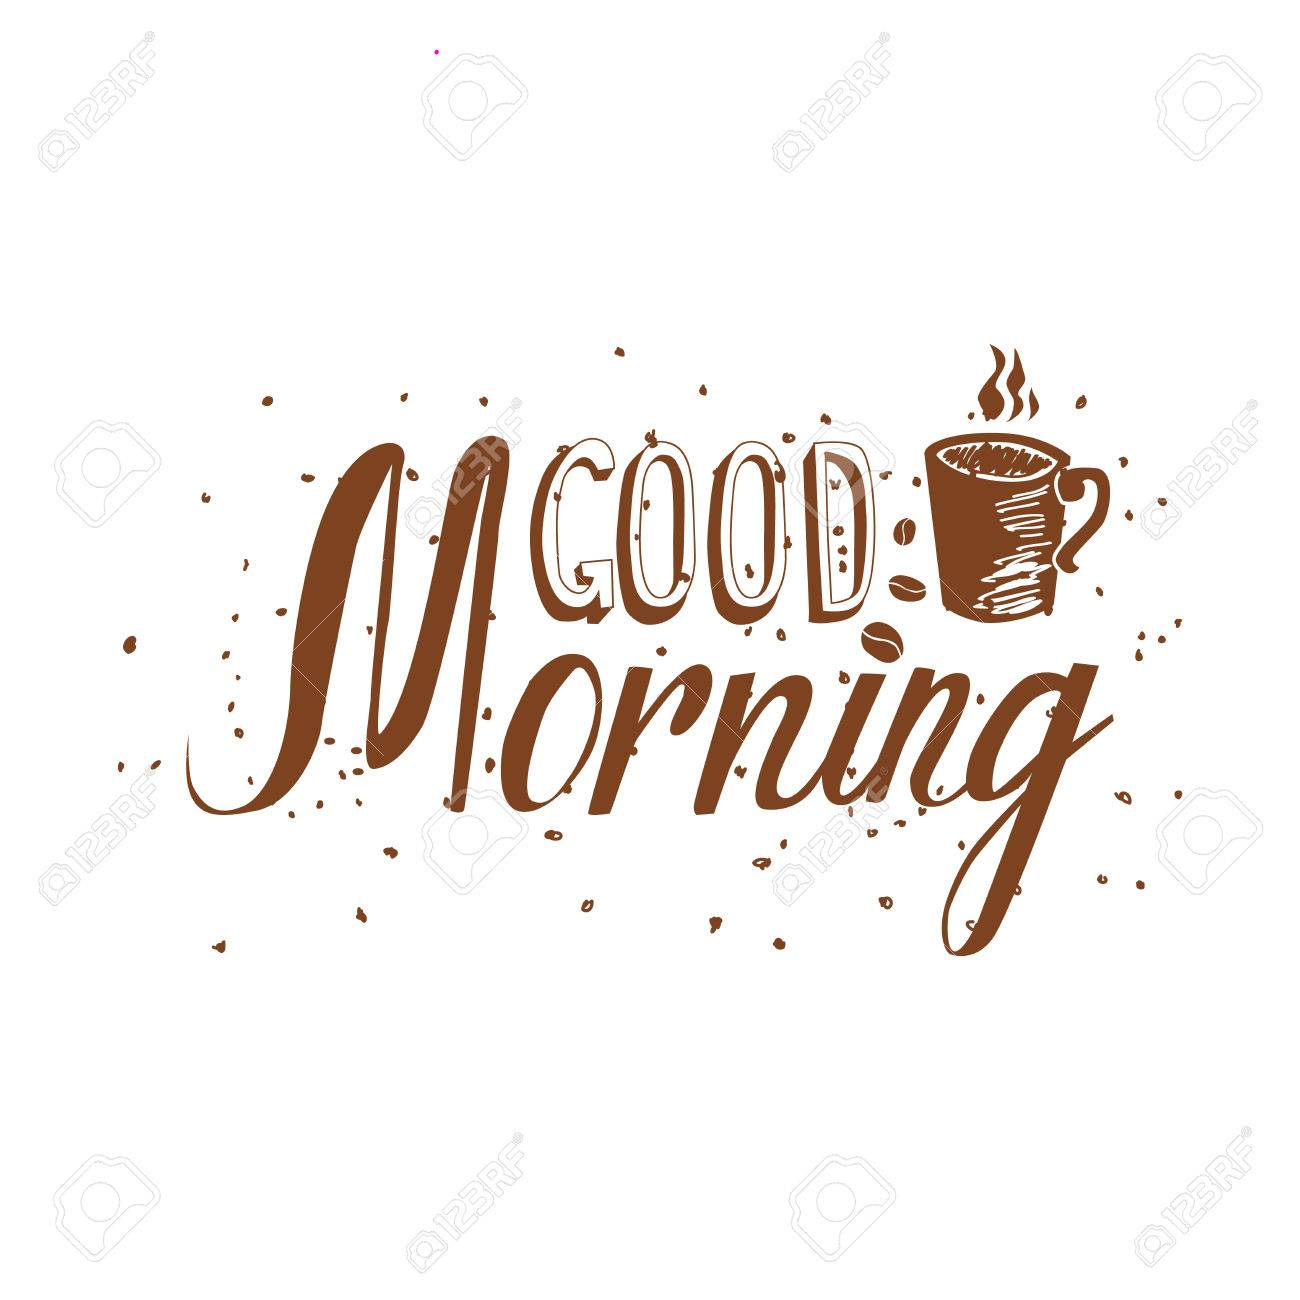 Hand Drawn Good Morning Inscription Great As A Poster Best Royalty Free Cliparts Vectors And Stock Illustration Image 51882417